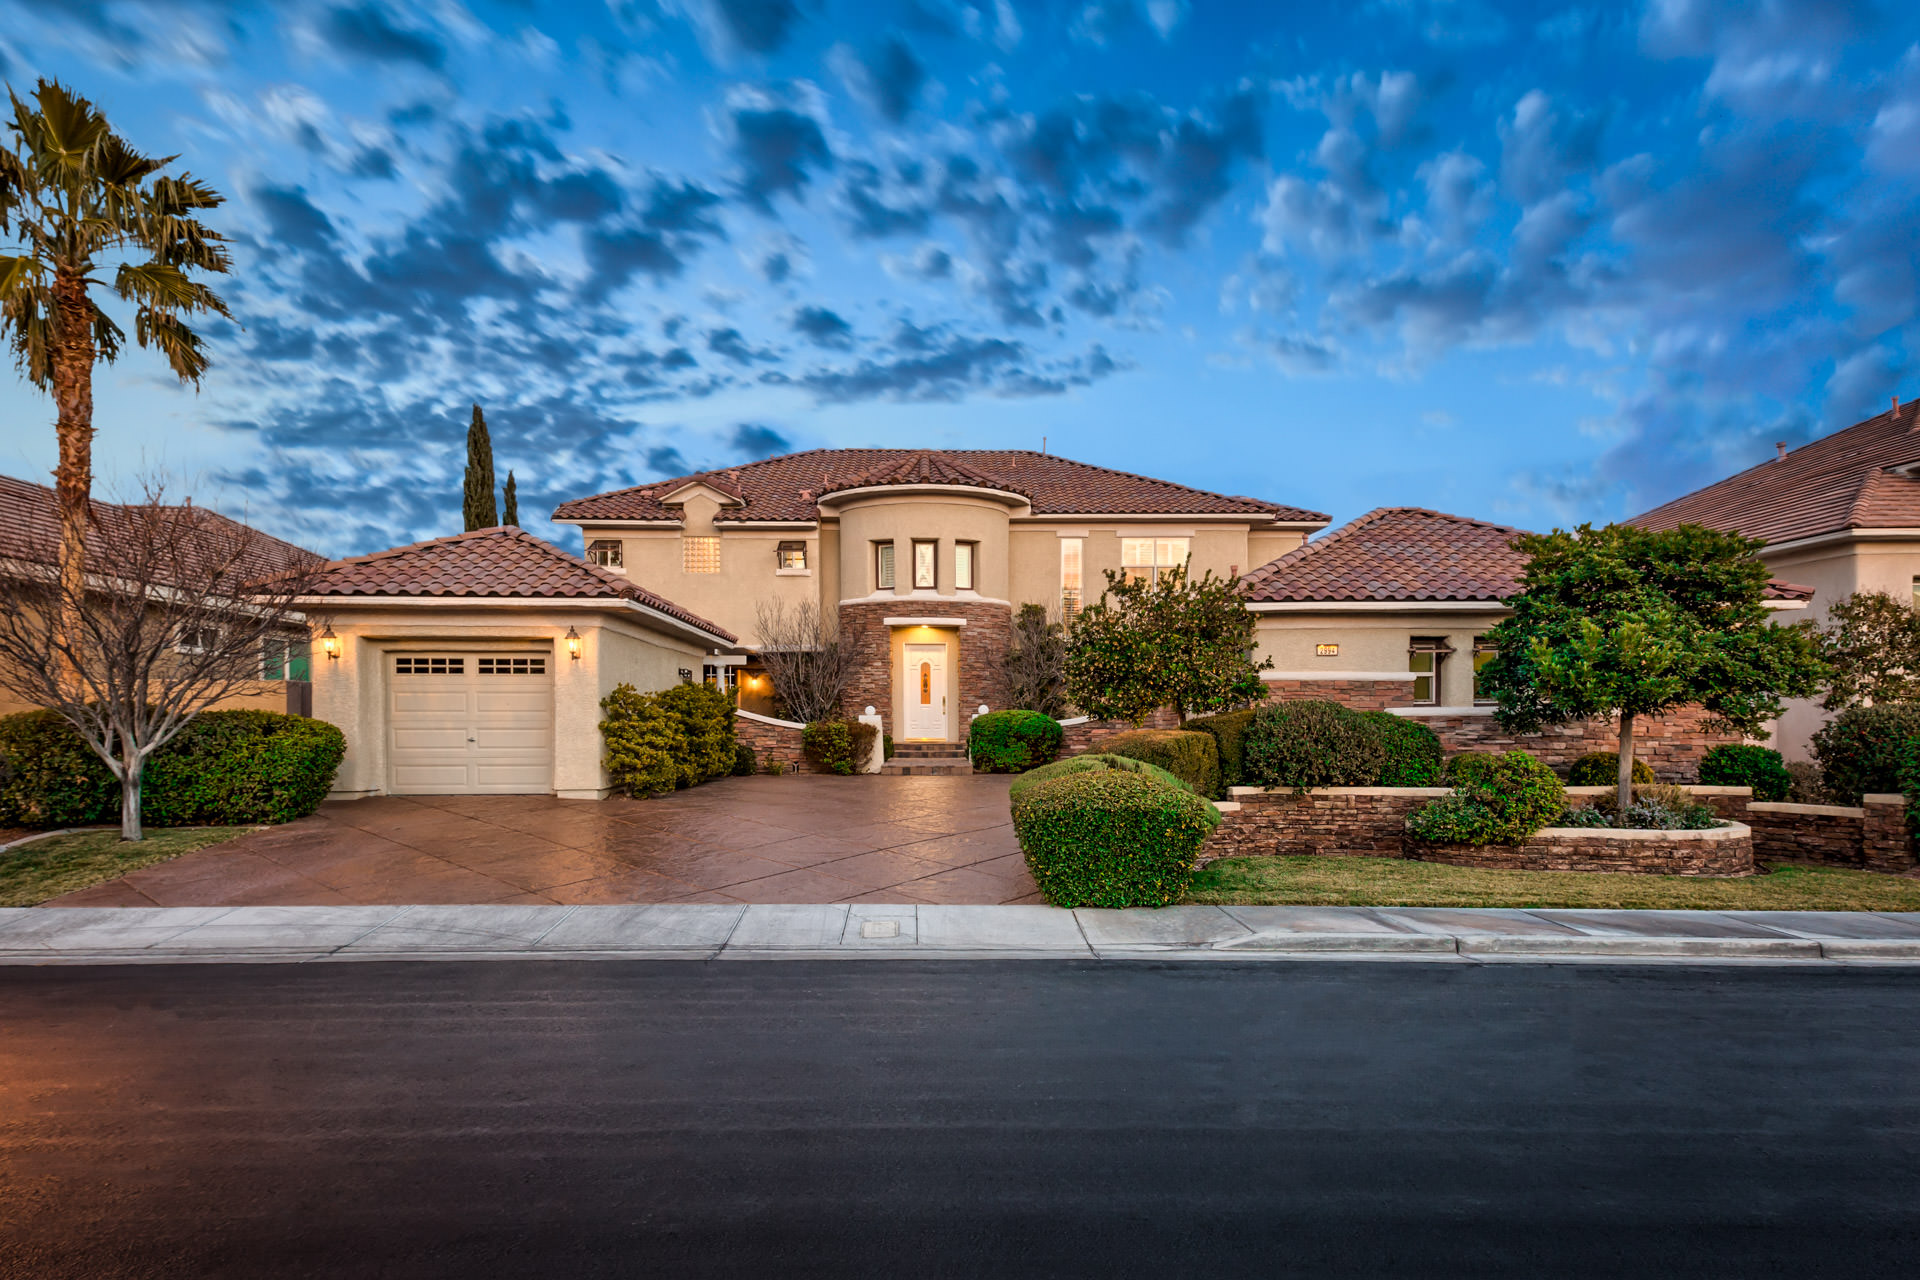 Million dollar homes in las vegas for sale up to 1m for Luxury home descriptions